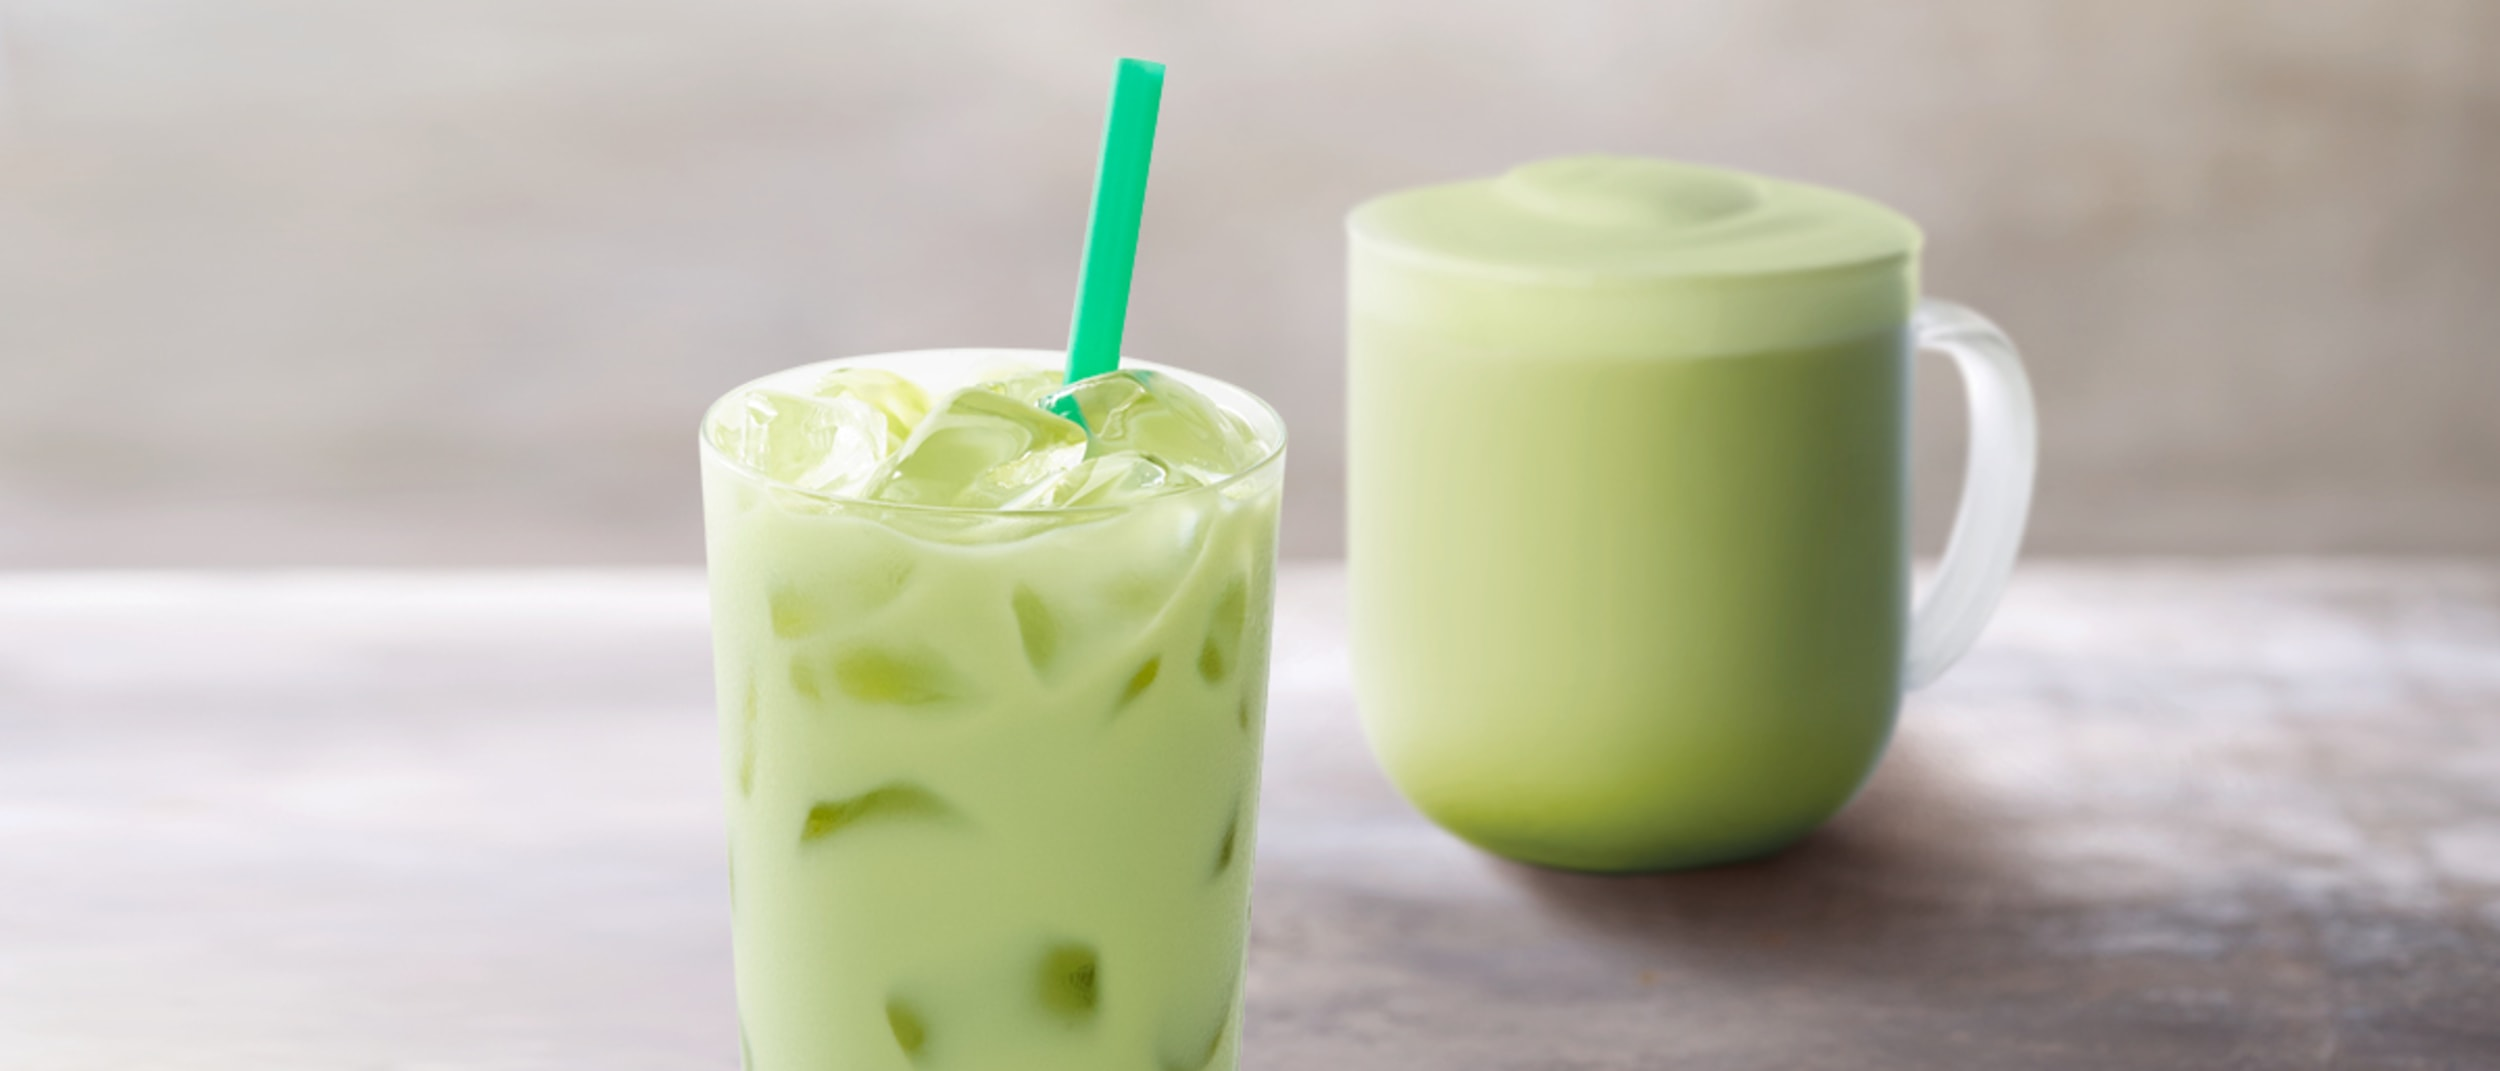 Starbucks: Green Tea Tuesdays